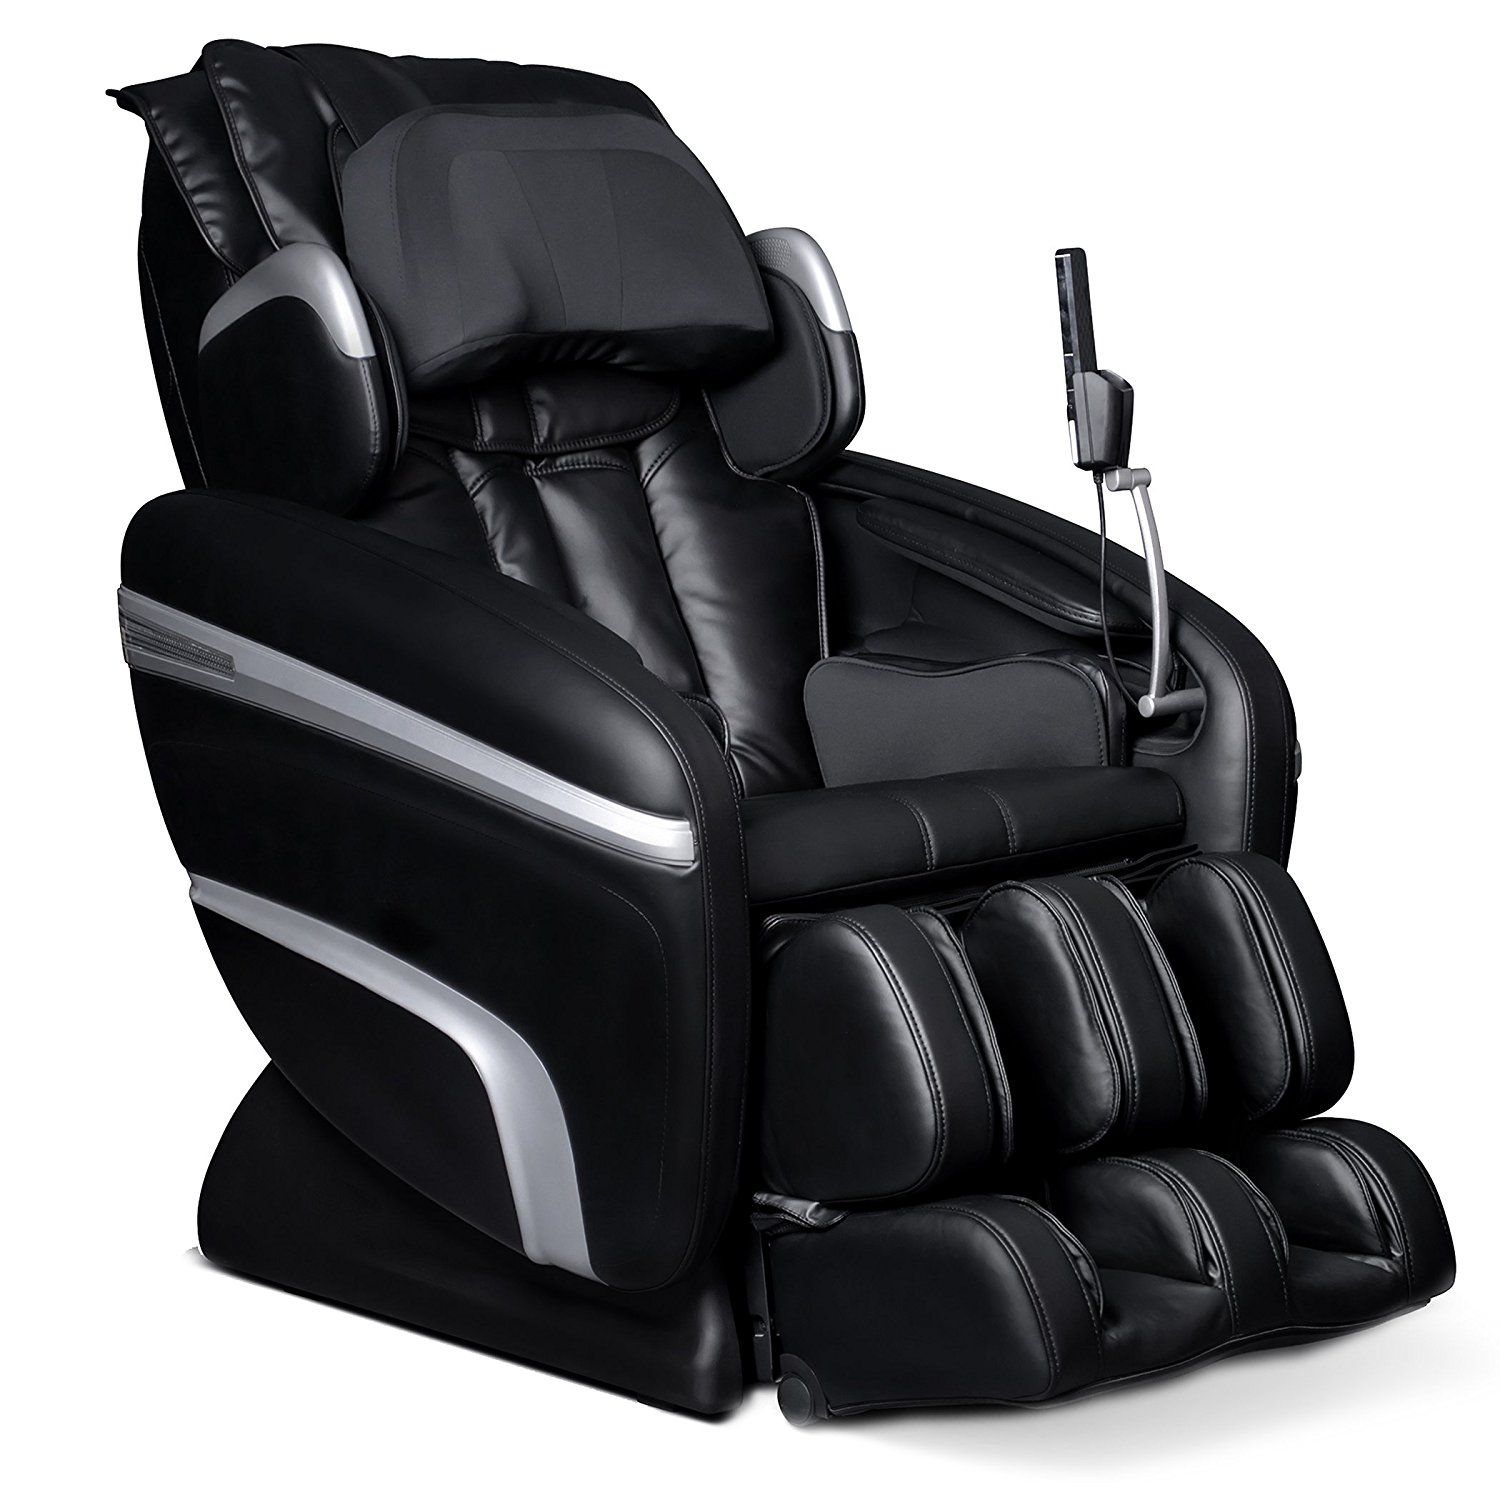 Osaki OS7200HA Model OS-7200H Executive ZERO GRAVITY S-Track Heating Massage Chair, Black, Computer Body Scan, Arm Massage, Quad Roller Head Massage System, 51 Air Bag Massagers, MP3 & iPod Connection with Built-in Speakers